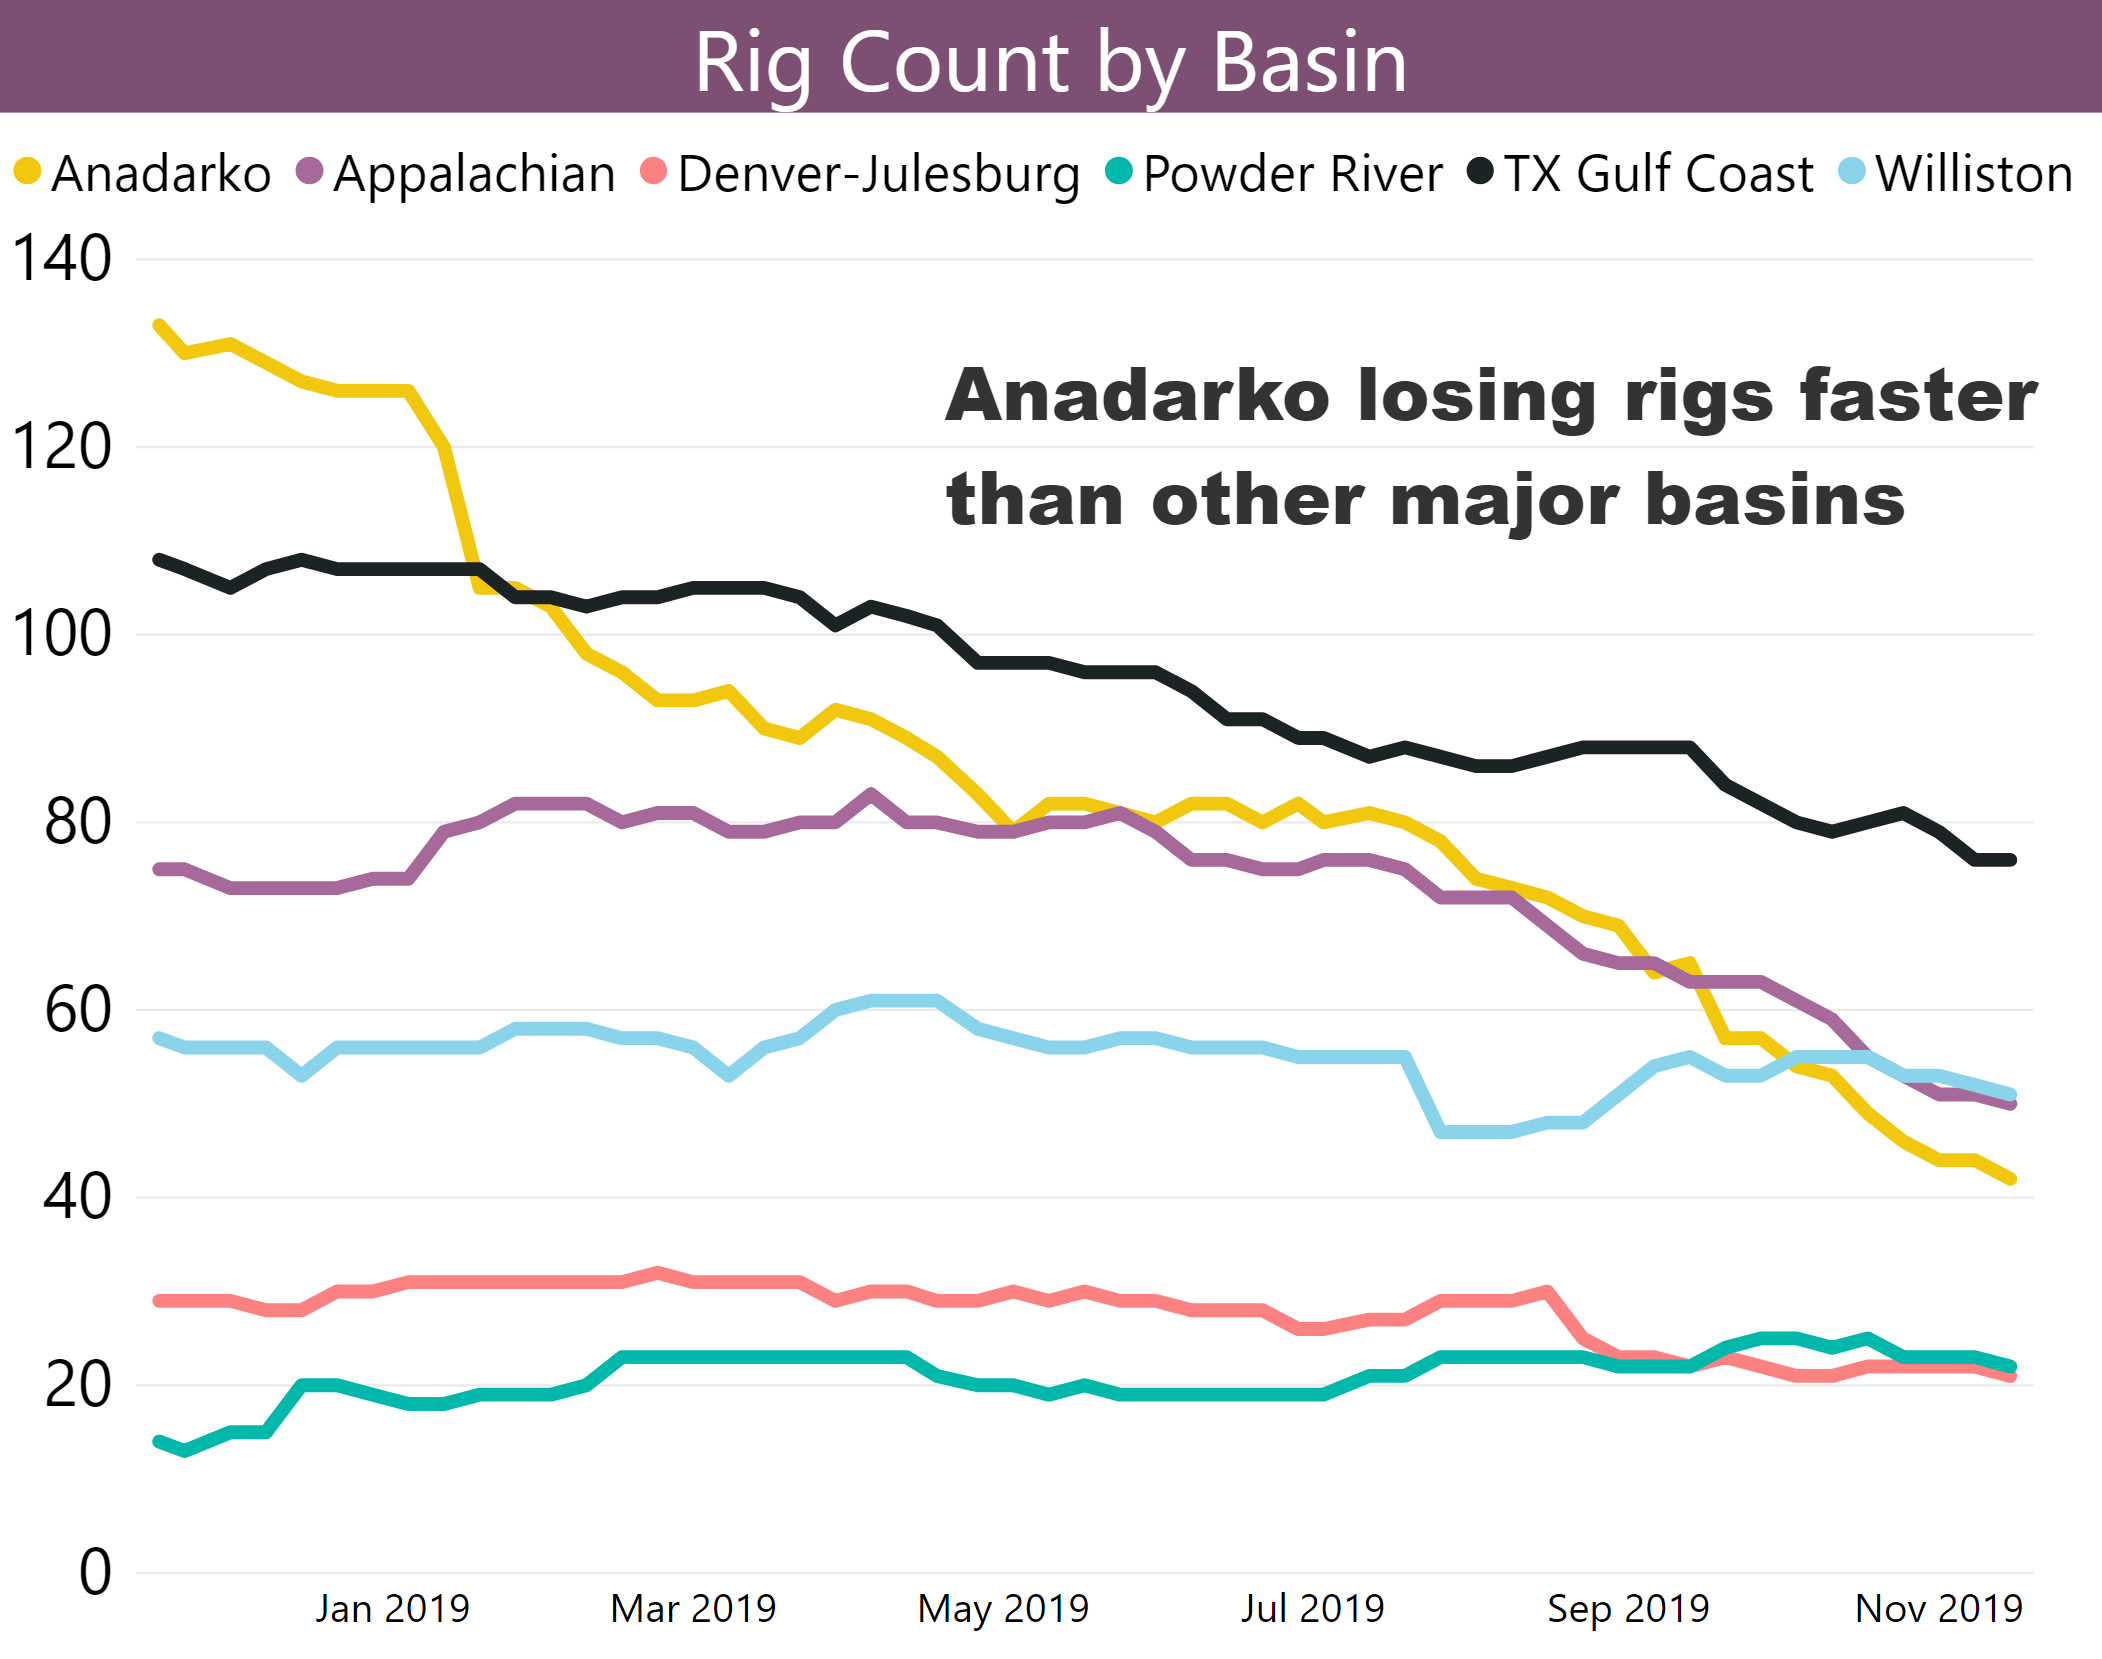 Anadarko rig count dropping faster than other major basins